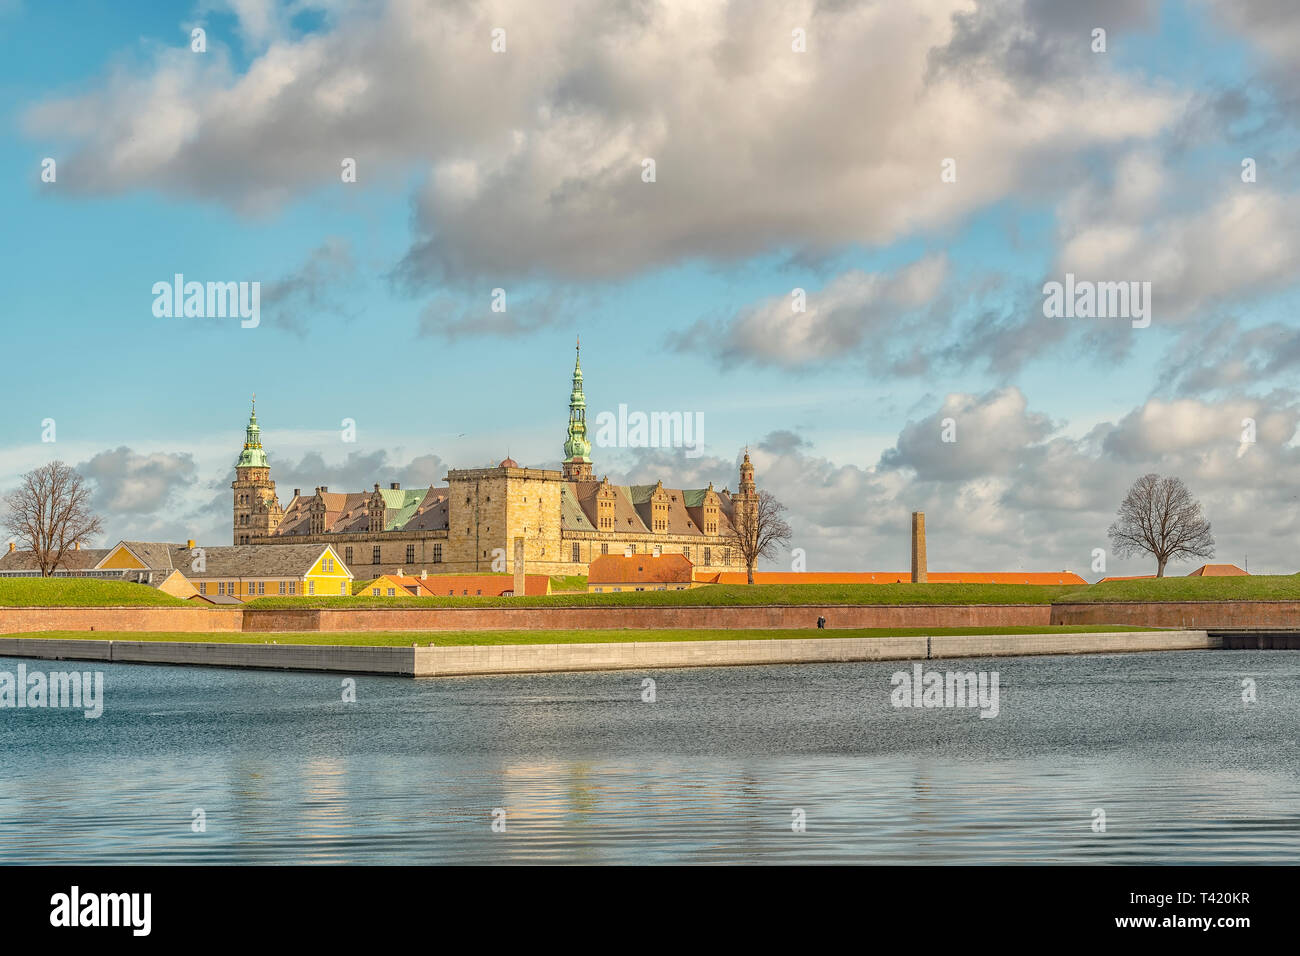 Kronborg castle made famous by William Shakespeare in his play about Hamlet situated in the Danish harbour town of Helsingor. - Stock Image